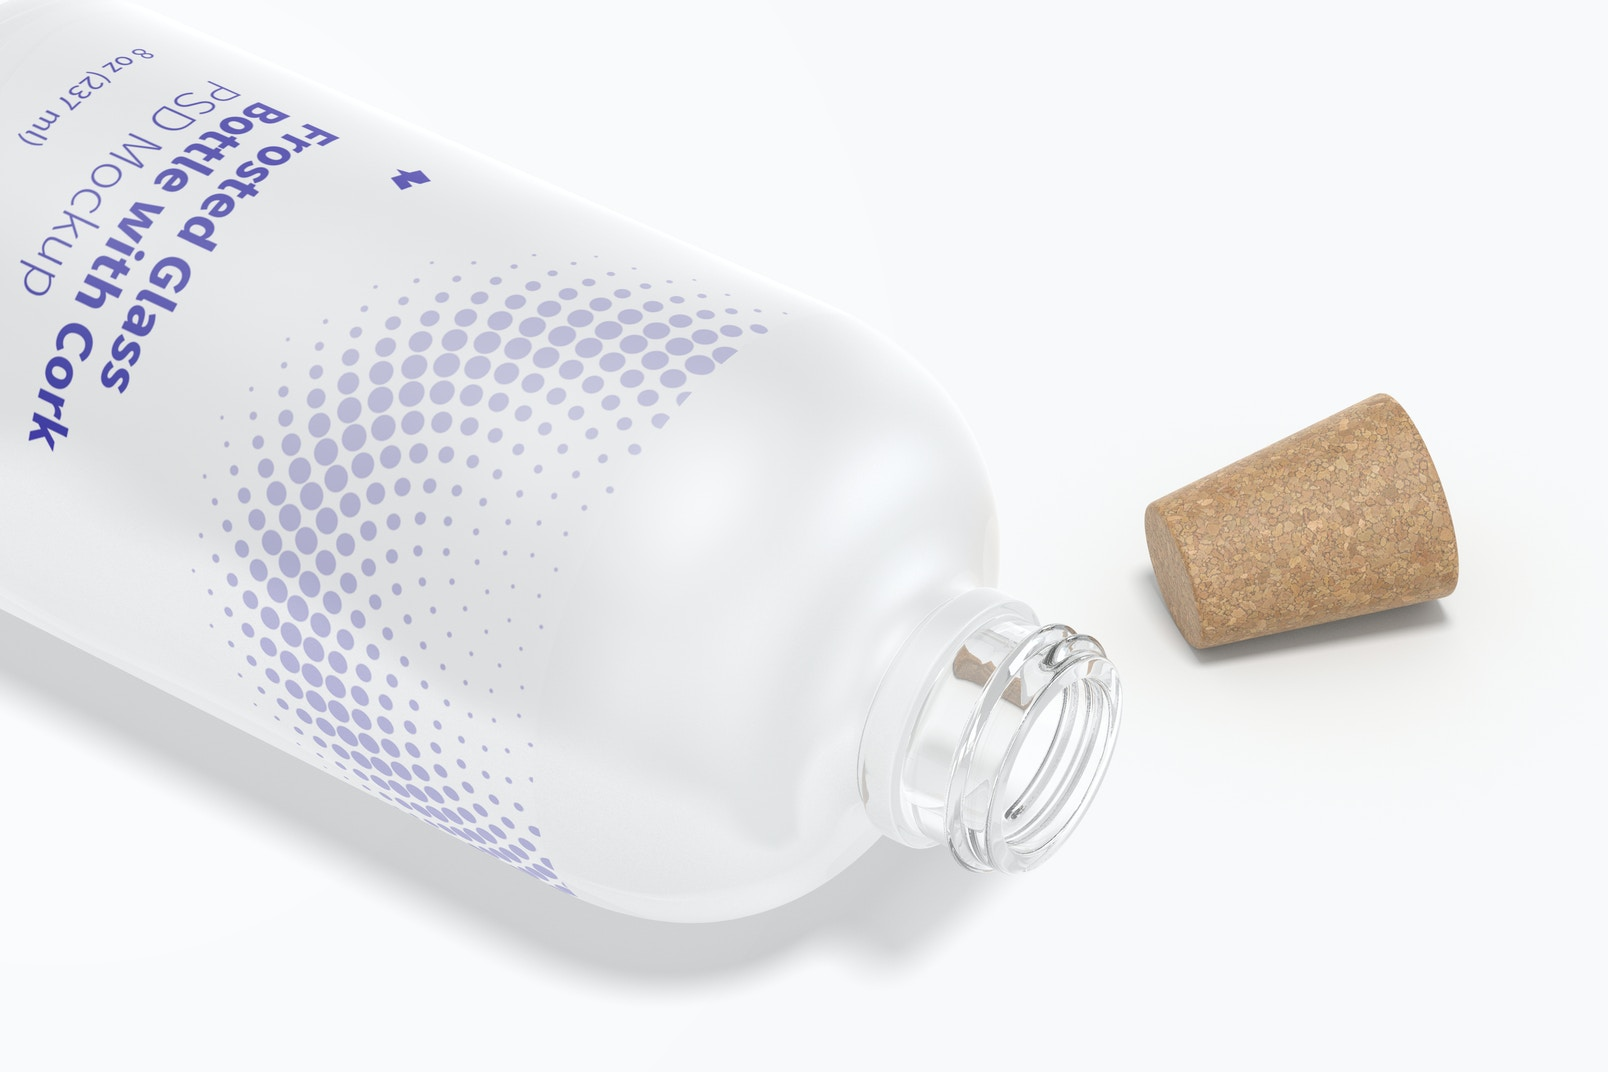 Frosted Glass Bottle with Cork Mockup, Close-Up